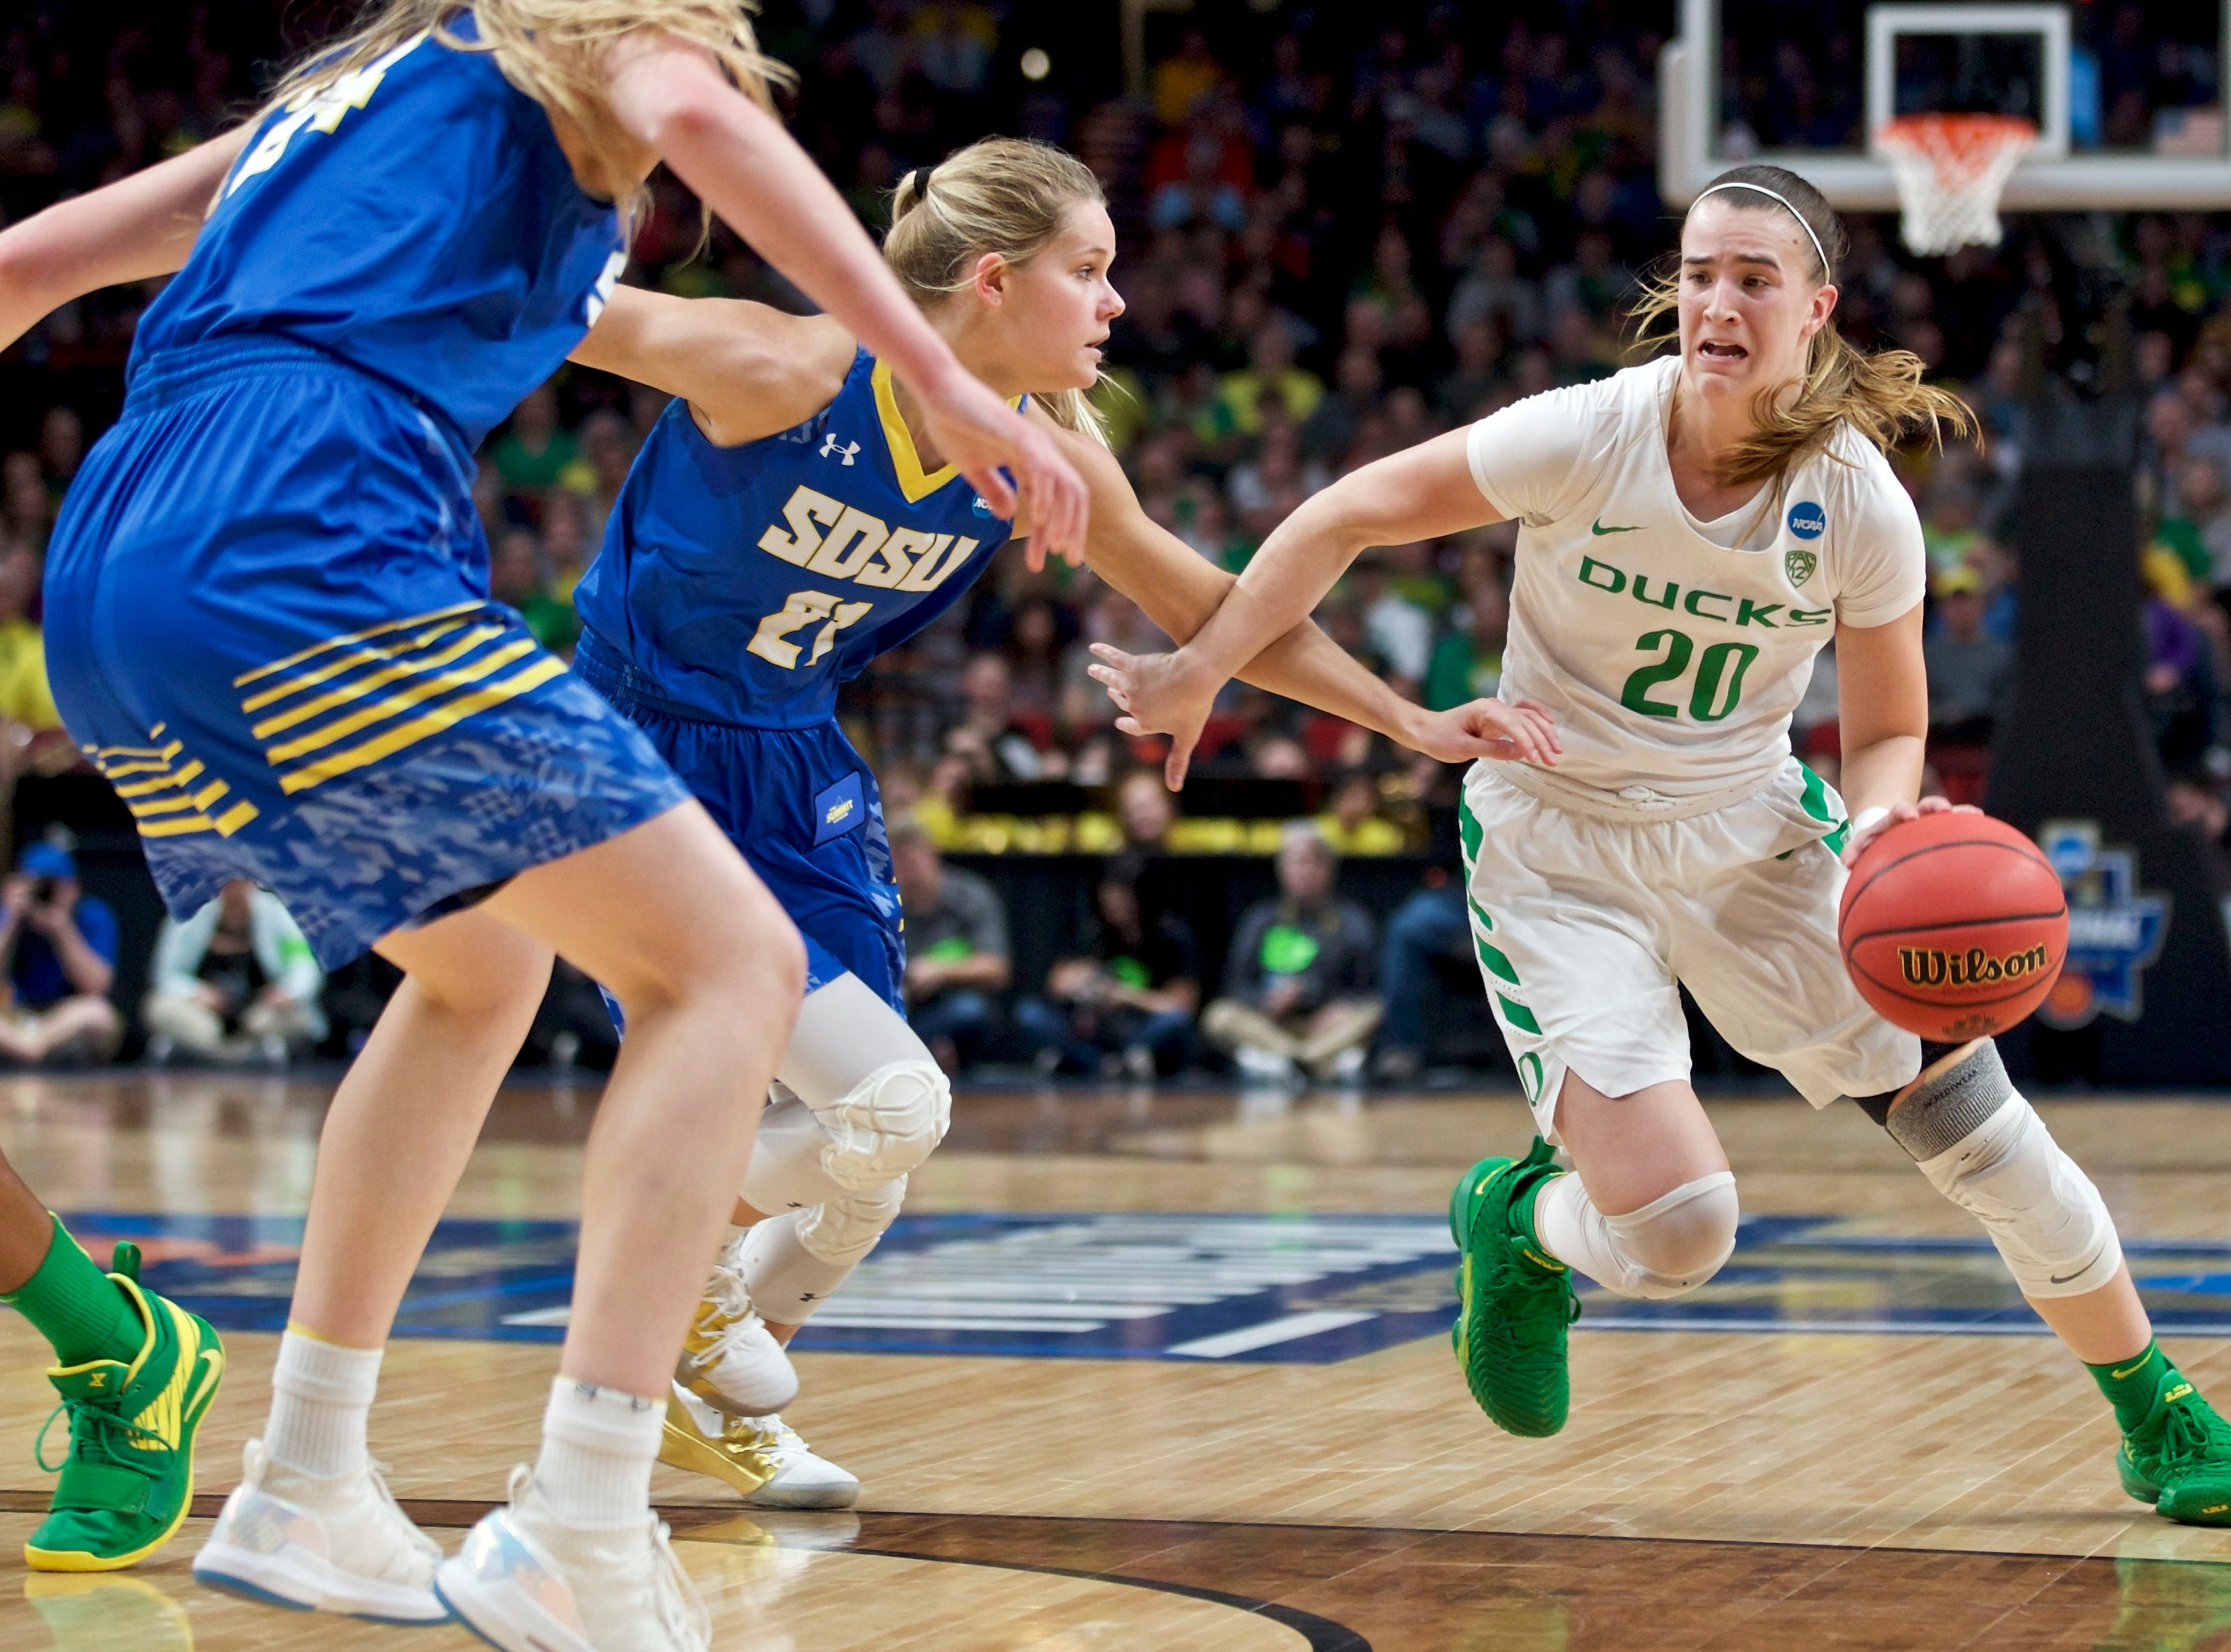 Oregon guard Sabrina Ionescu, right, drives to the basket past South Dakota State guard Tylee Irwin during the first half of a regional semifinal in the NCAA women's college basketball tournament Friday, March 29, 2019, in Portland, Ore. (AP Photo/Craig Mitchelldyer)